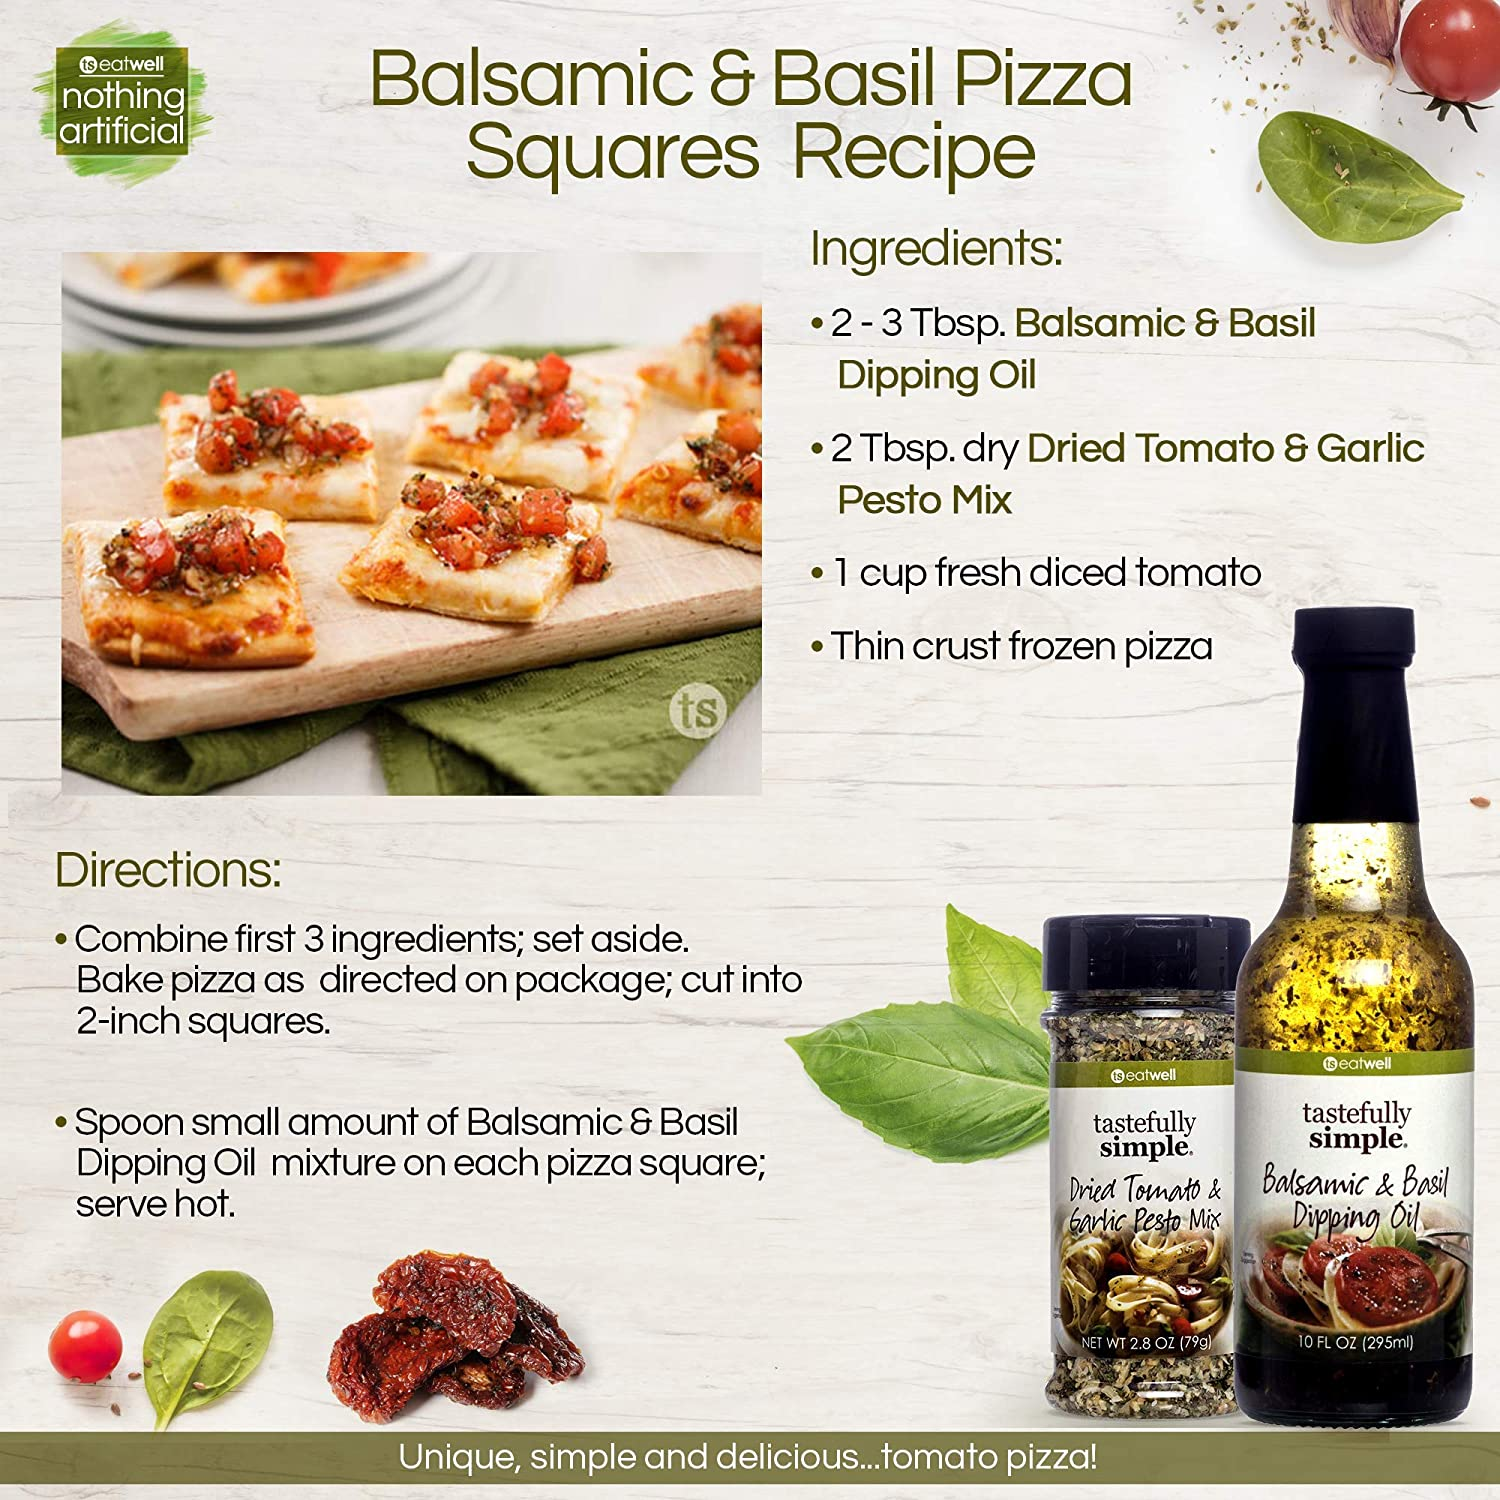 Amazon Com Tastefully Simple Balsamic Basil Dipping Oil Perfect For Dipping Bread Over Pasta Paninis Grilled Cheese 10 Fl Oz Grocery Gourmet Food